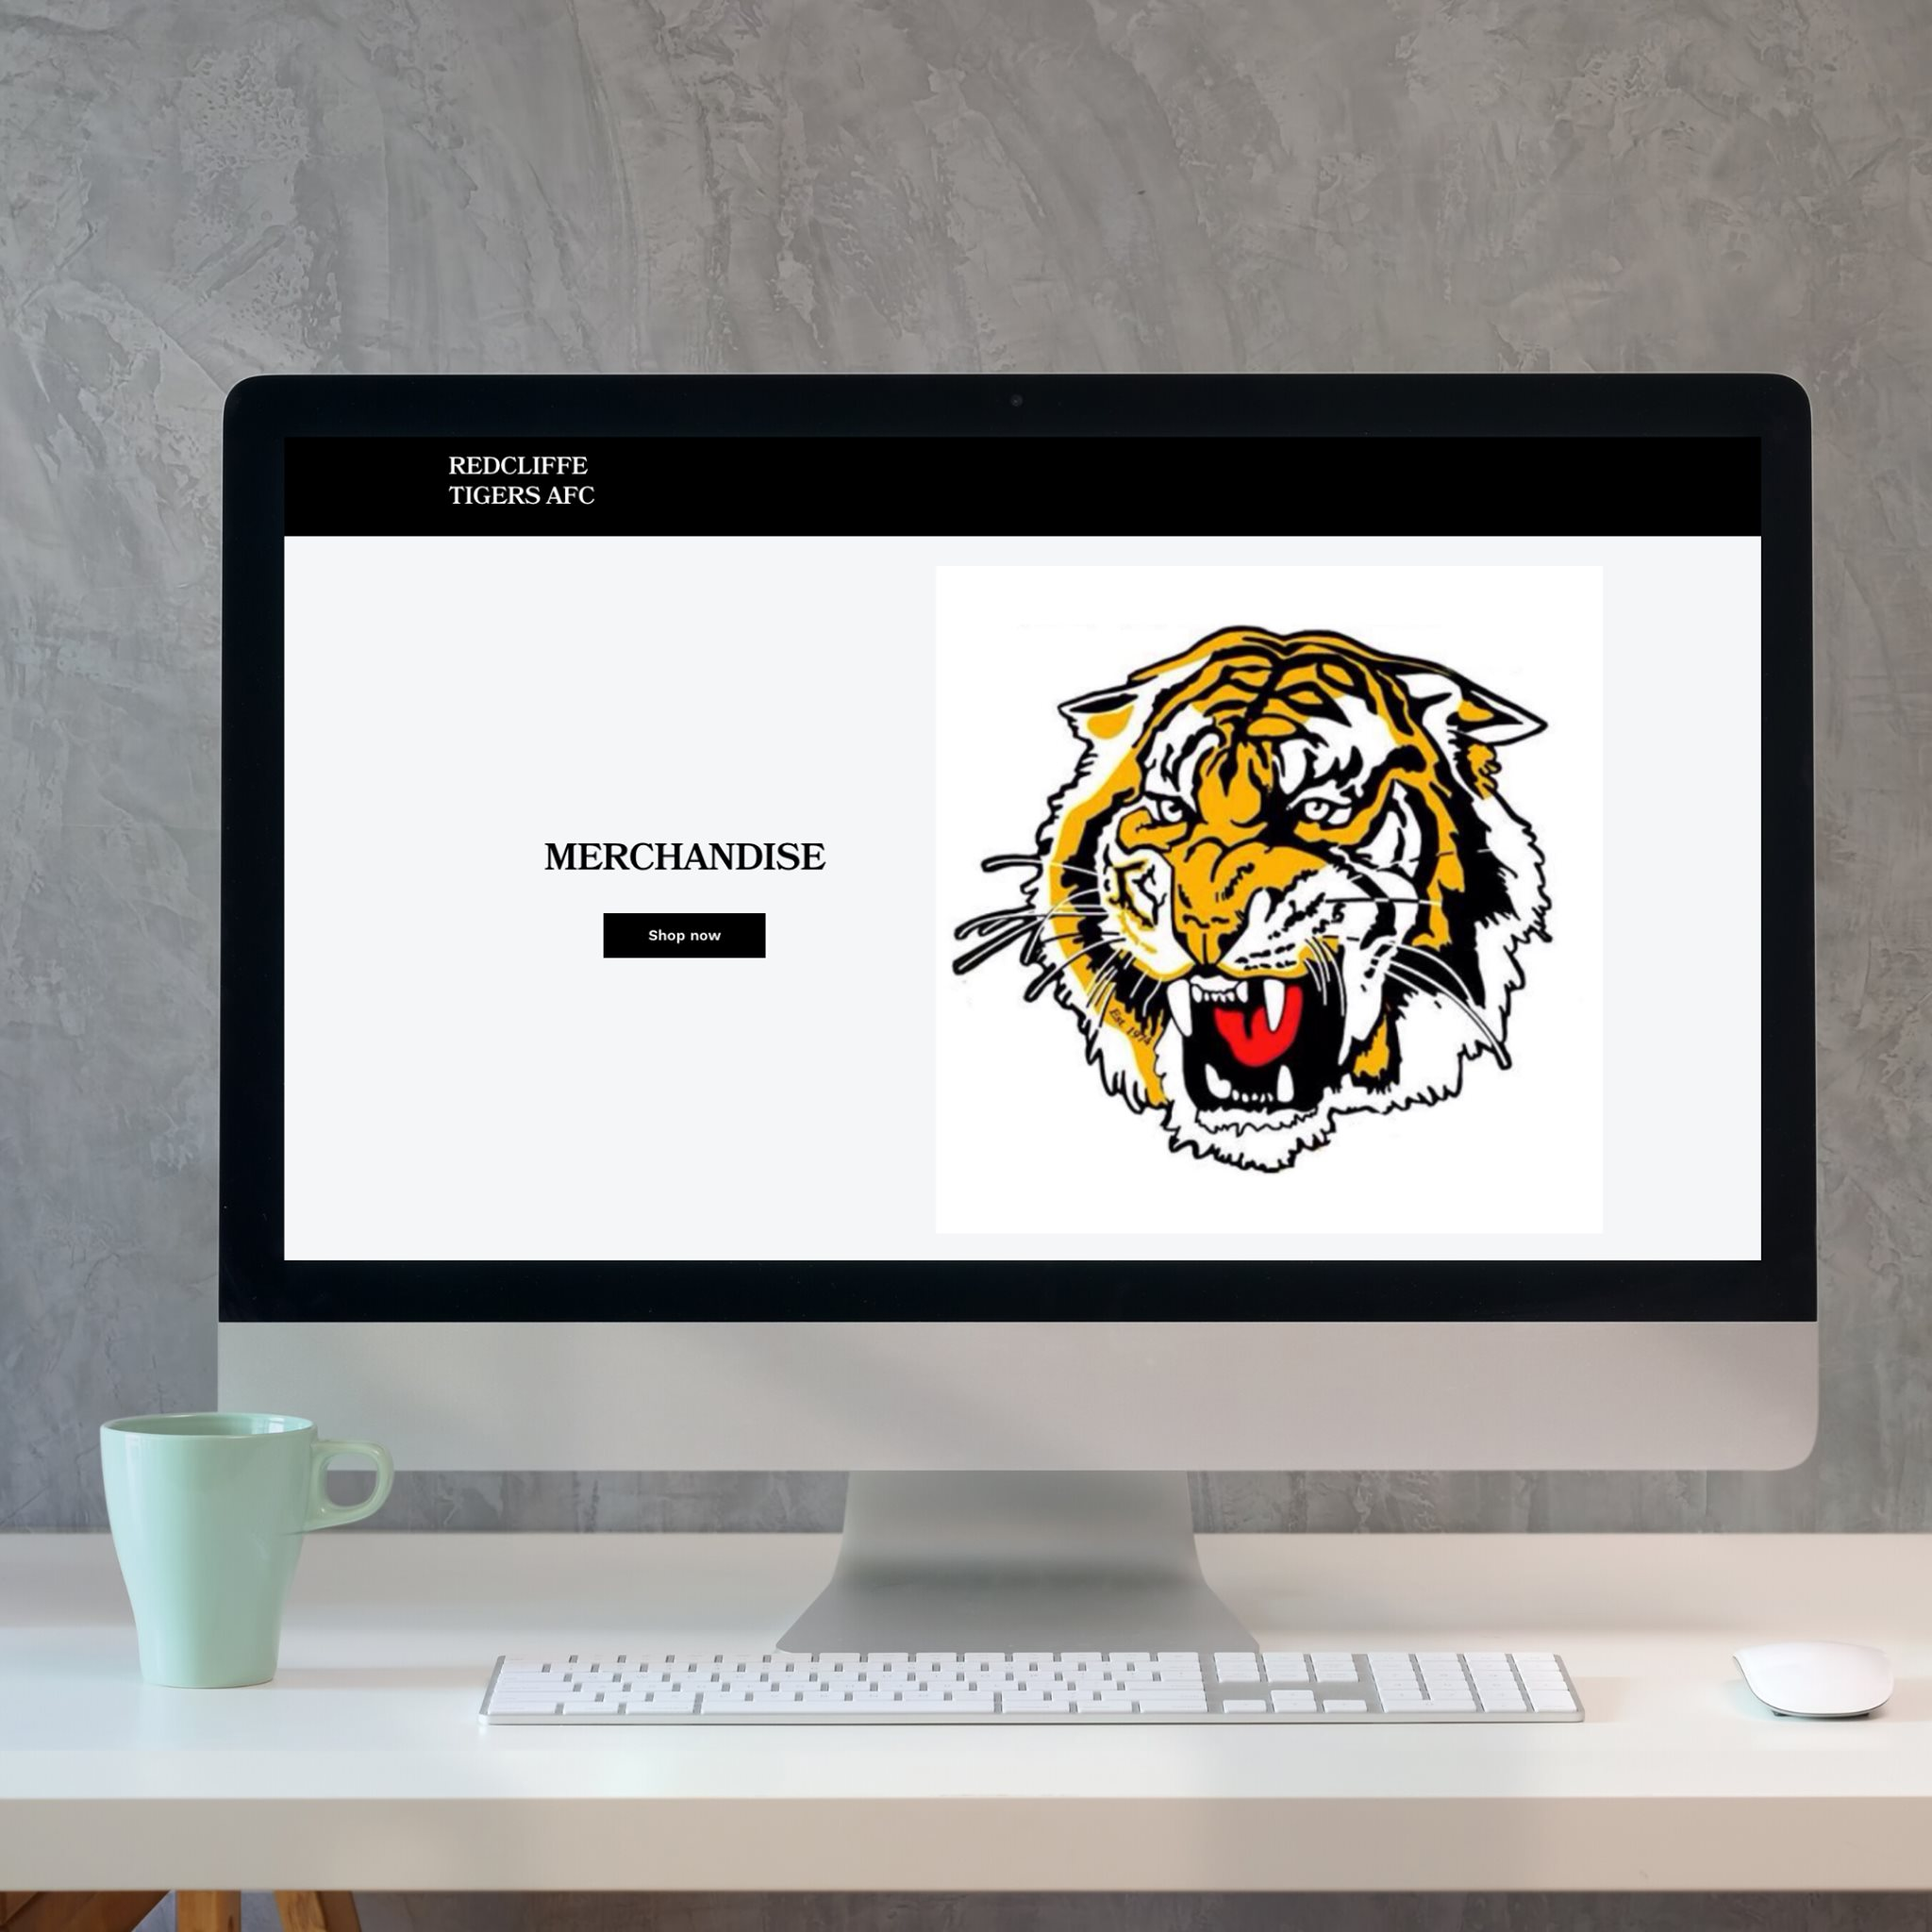 Redcliffe tigers merch website